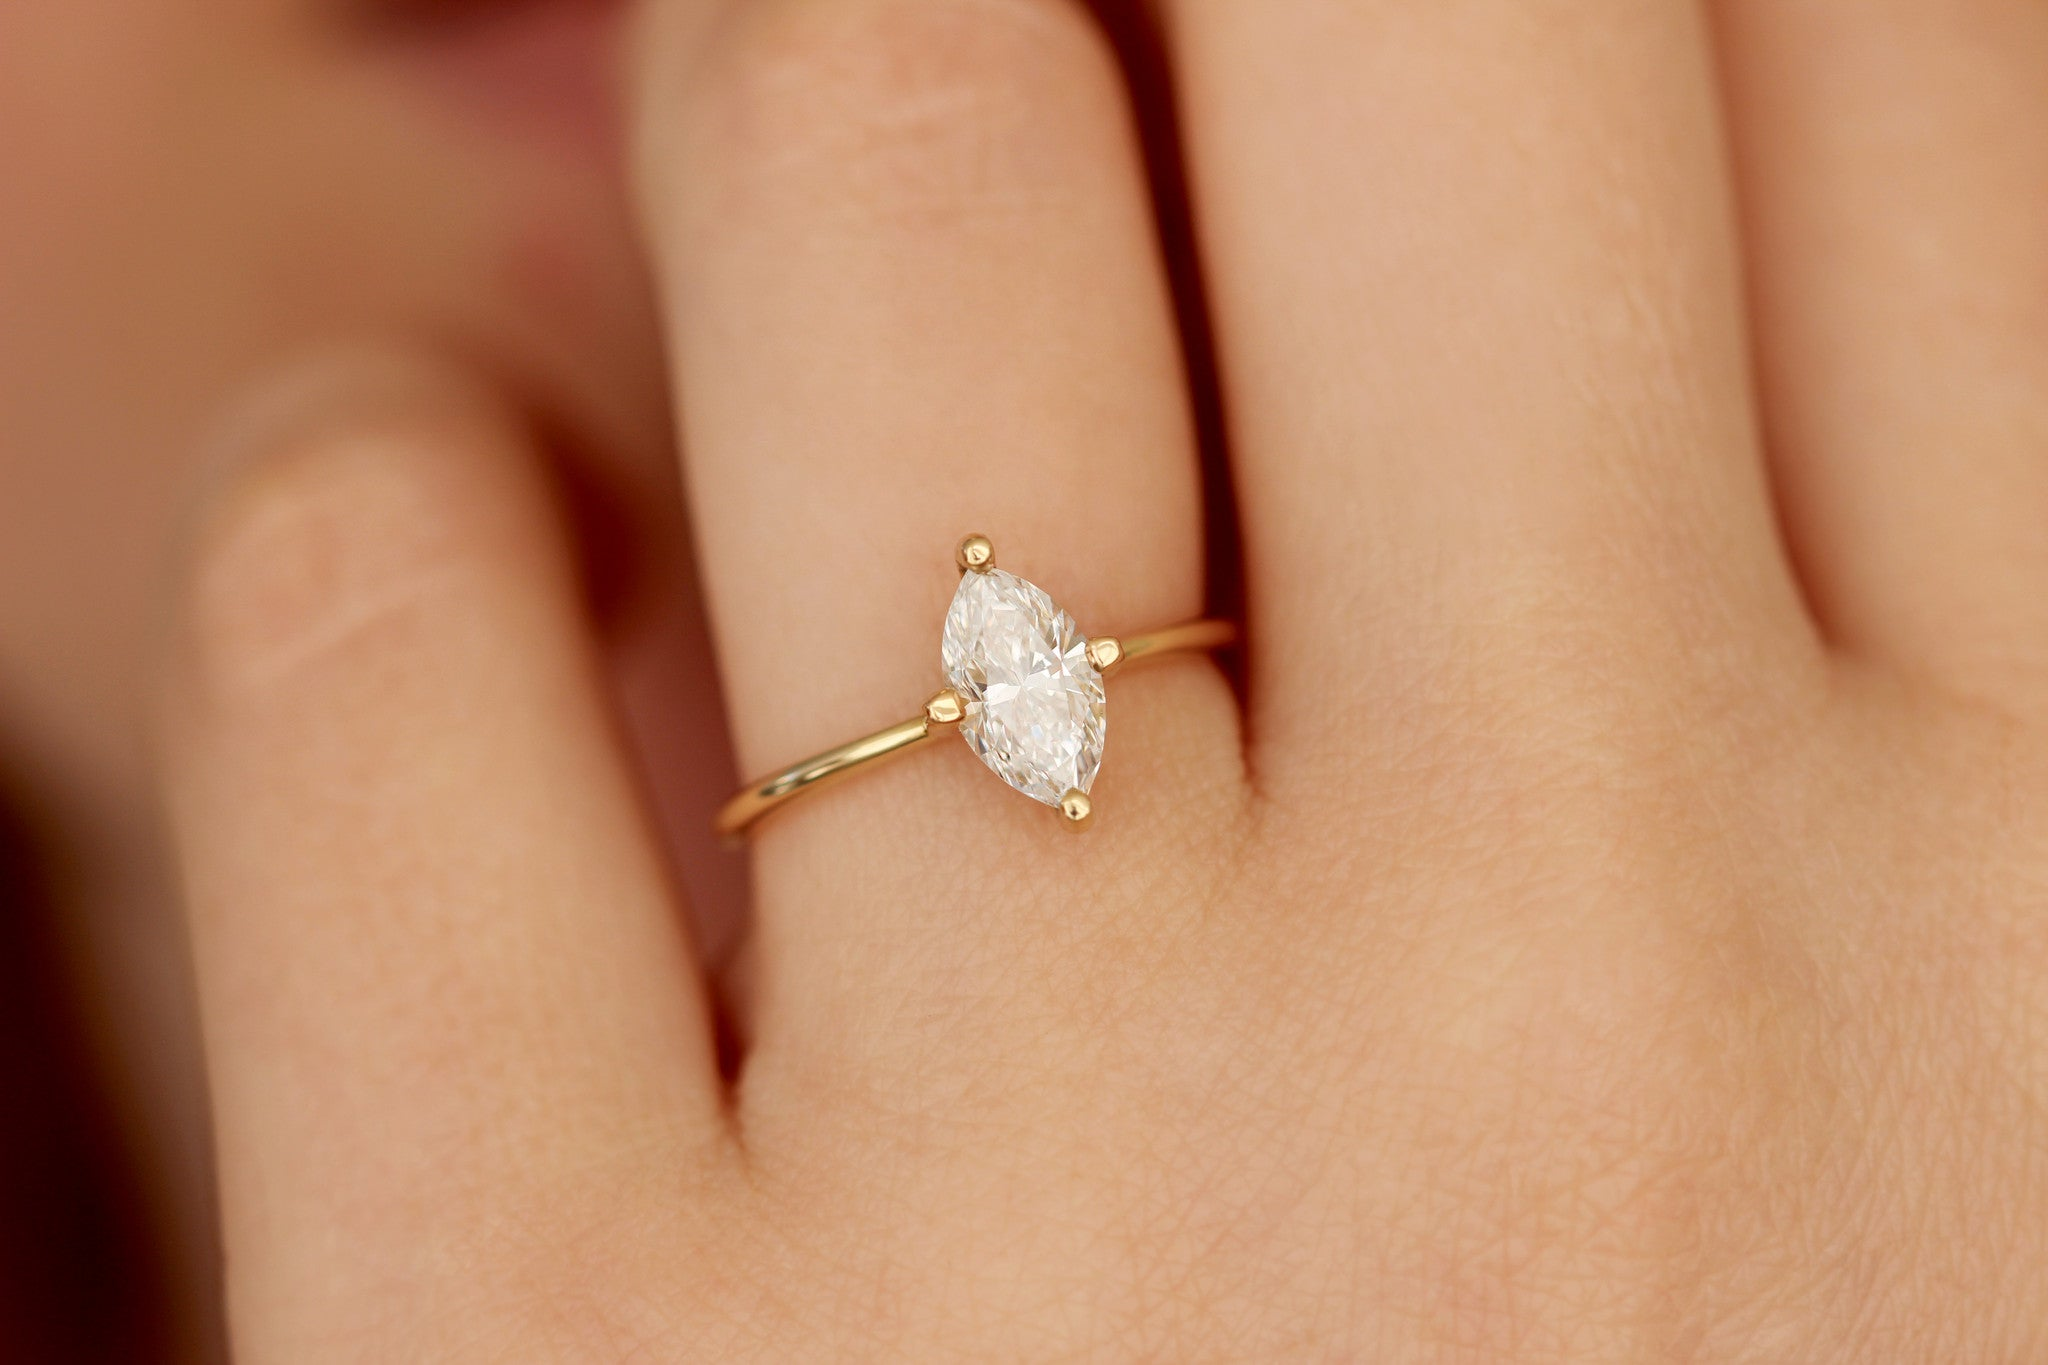 e Carat Marquise Cut Engagement Ring – ARTEMER